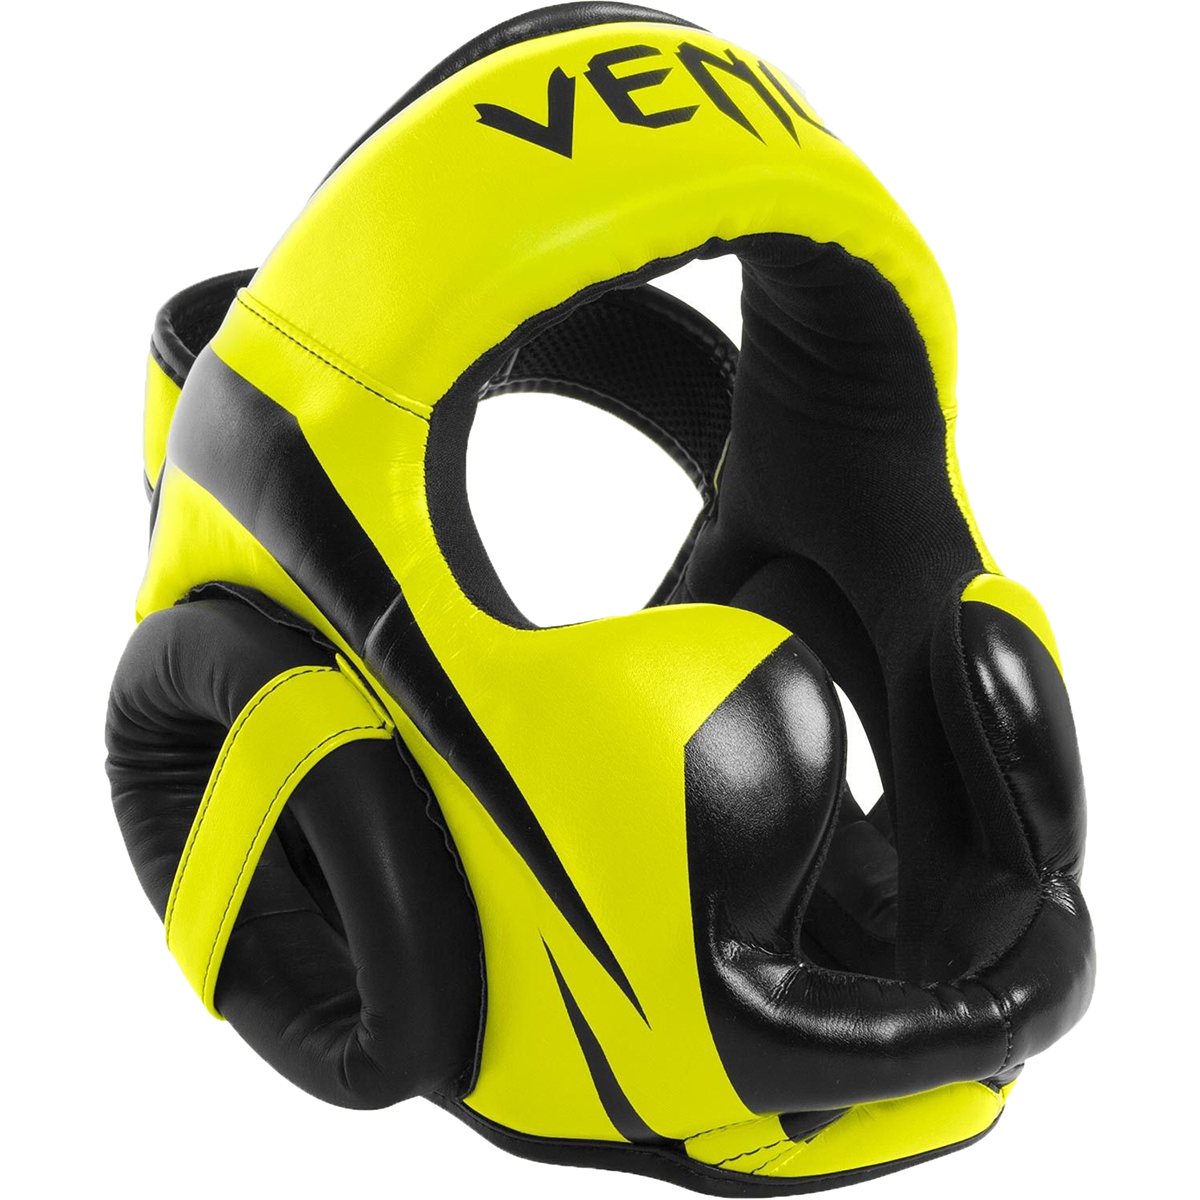 Venum-Elite-Boxing-Headgear thumbnail 63